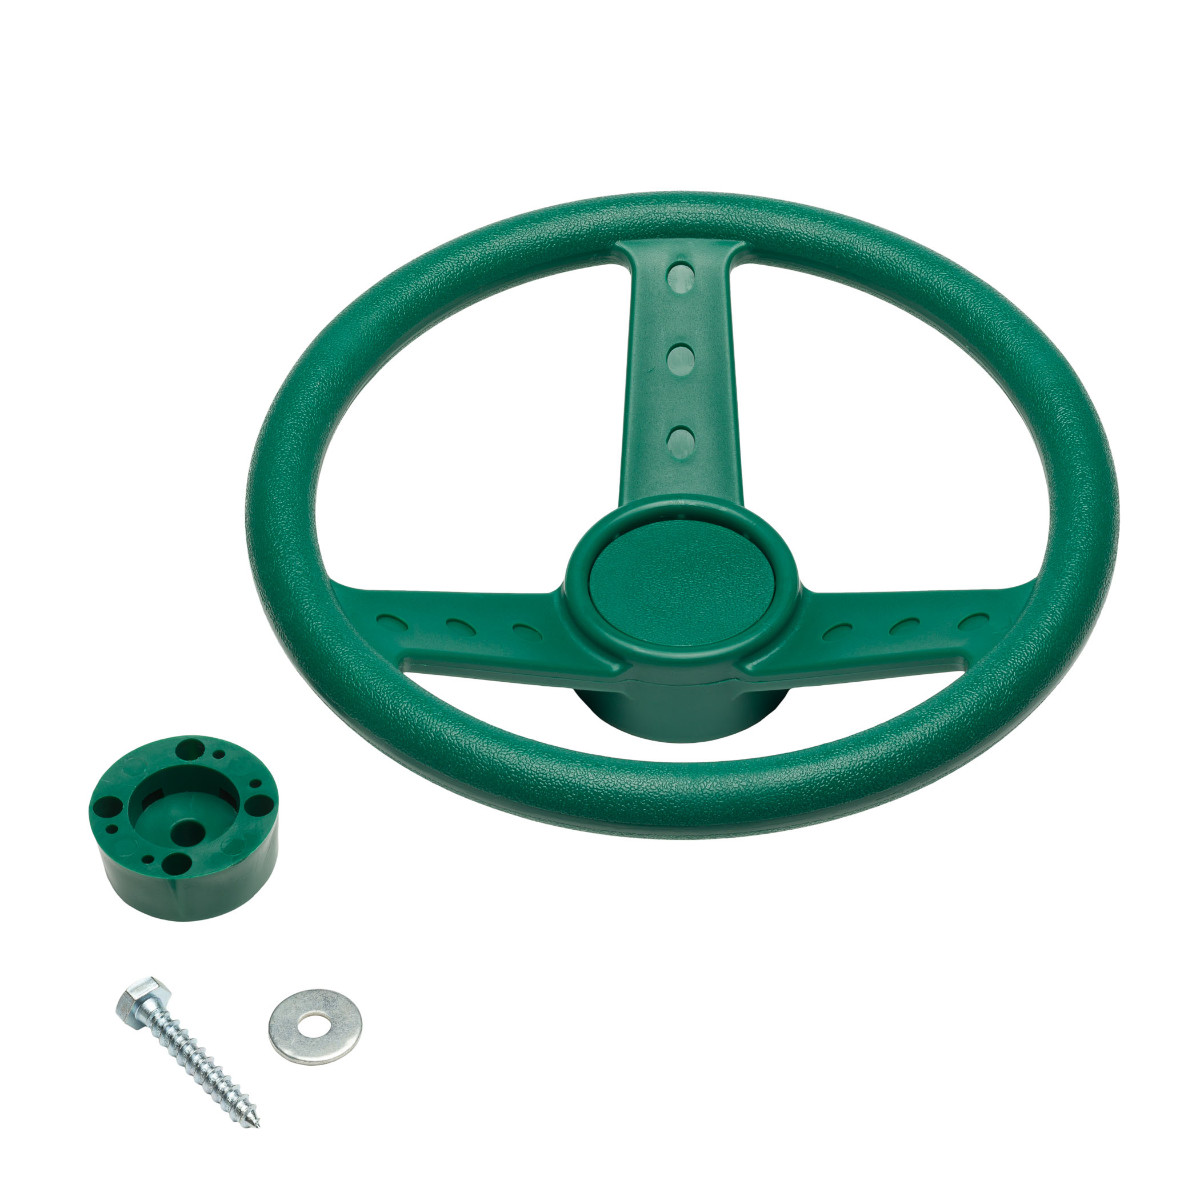 Auto Steering Wheel Green (SWR-G)